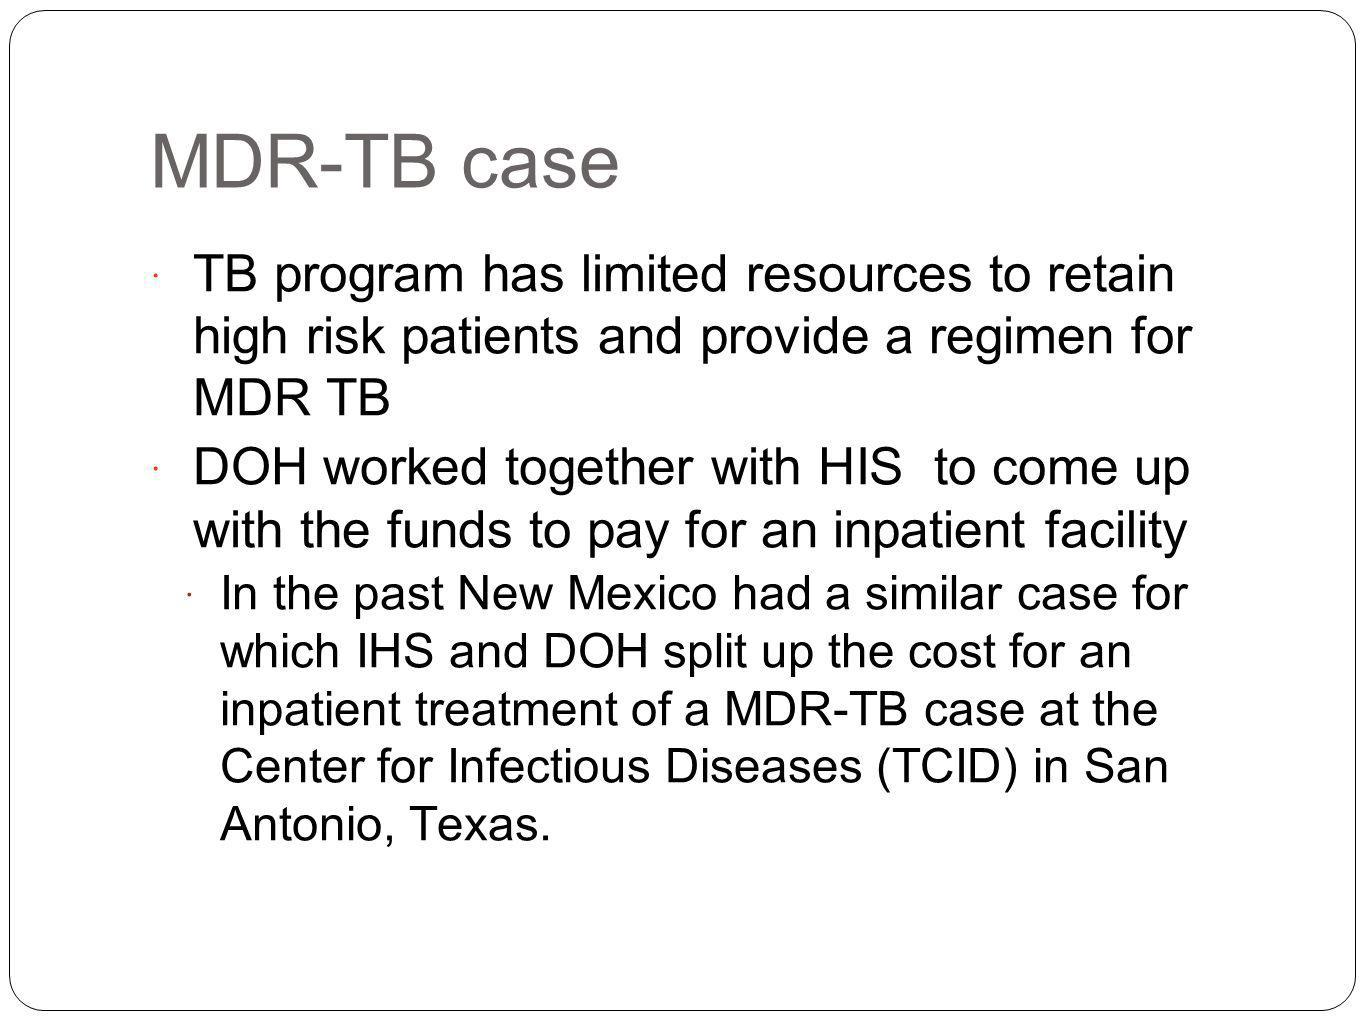 MDR-TB case TB program has limited resources to retain high risk patients and provide a regimen for MDR TB DOH worked together with HIS to come up with the funds to pay for an inpatient facility In the past New Mexico had a similar case for which IHS and DOH split up the cost for an inpatient treatment of a MDR-TB case at the Center for Infectious Diseases (TCID) in San Antonio, Texas.